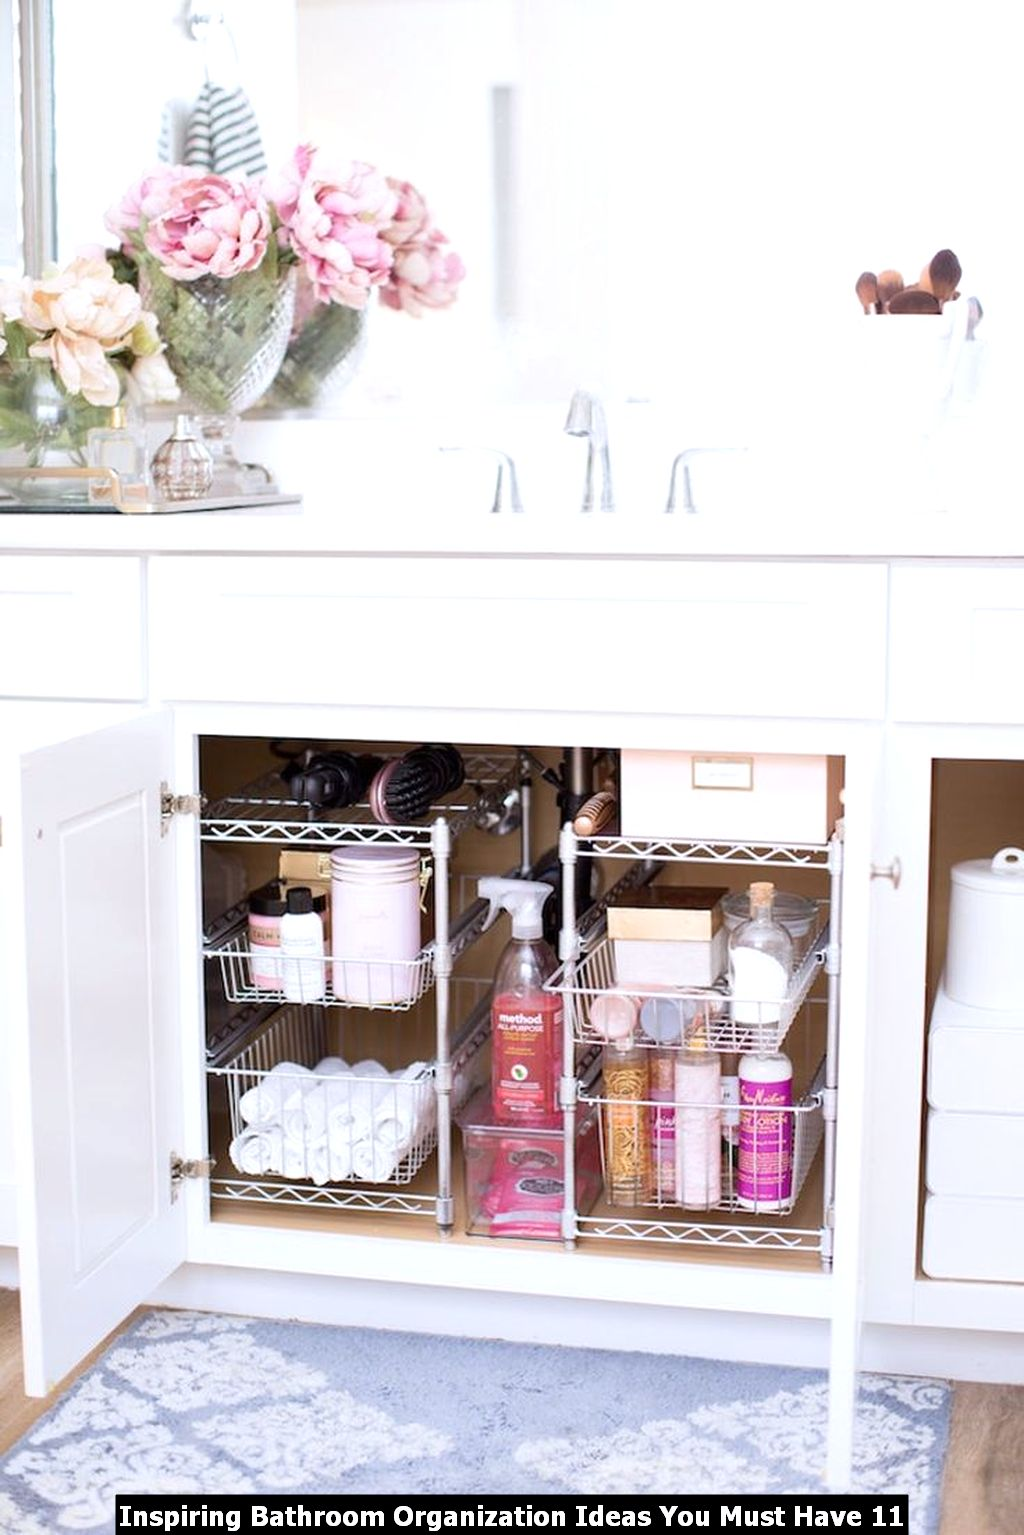 Inspiring Bathroom Organization Ideas You Must Have 11